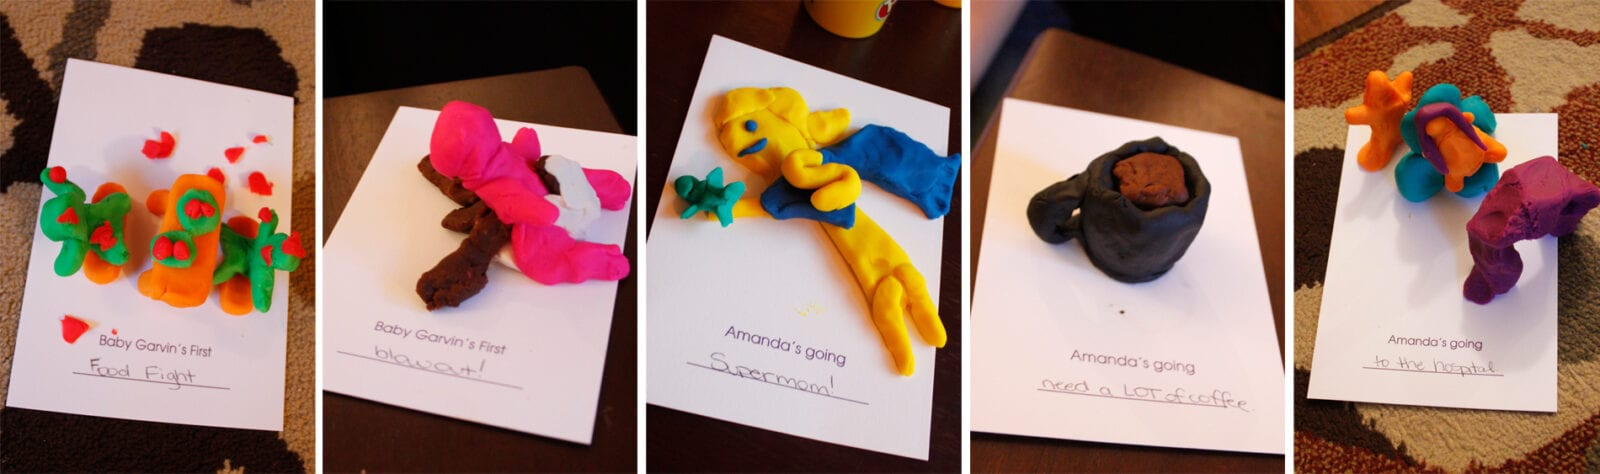 Baby shower games with play doh image.